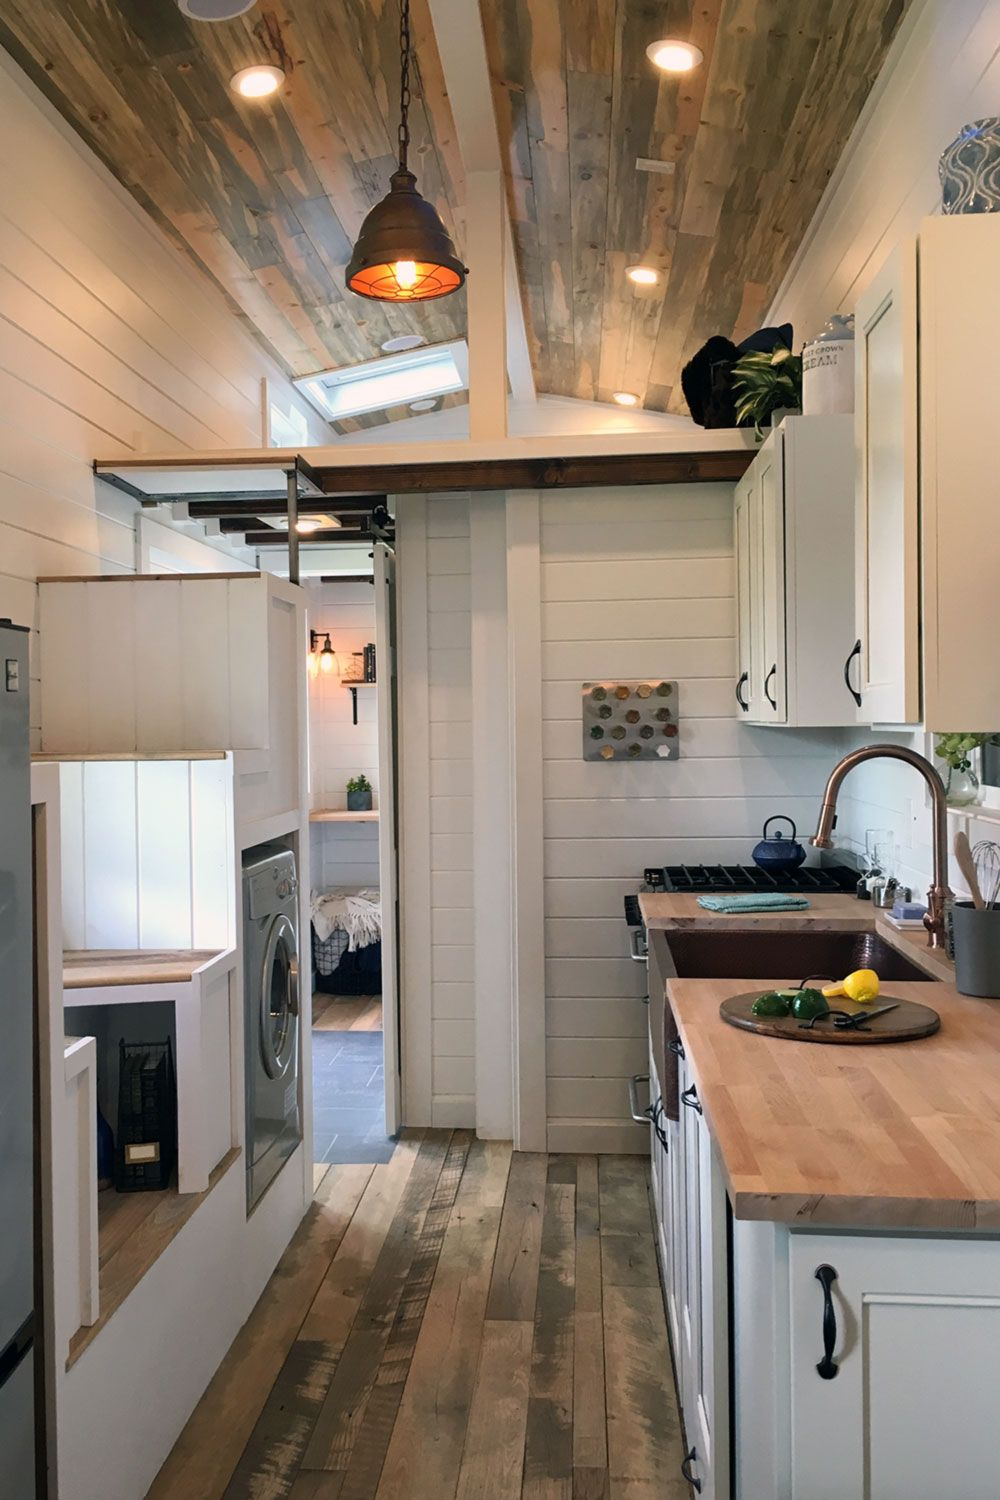 Modern tiny home boasts a big kitchen for foodies treehugger - Kitchen With A Large Countertop And Beautiful Hardwood Floors